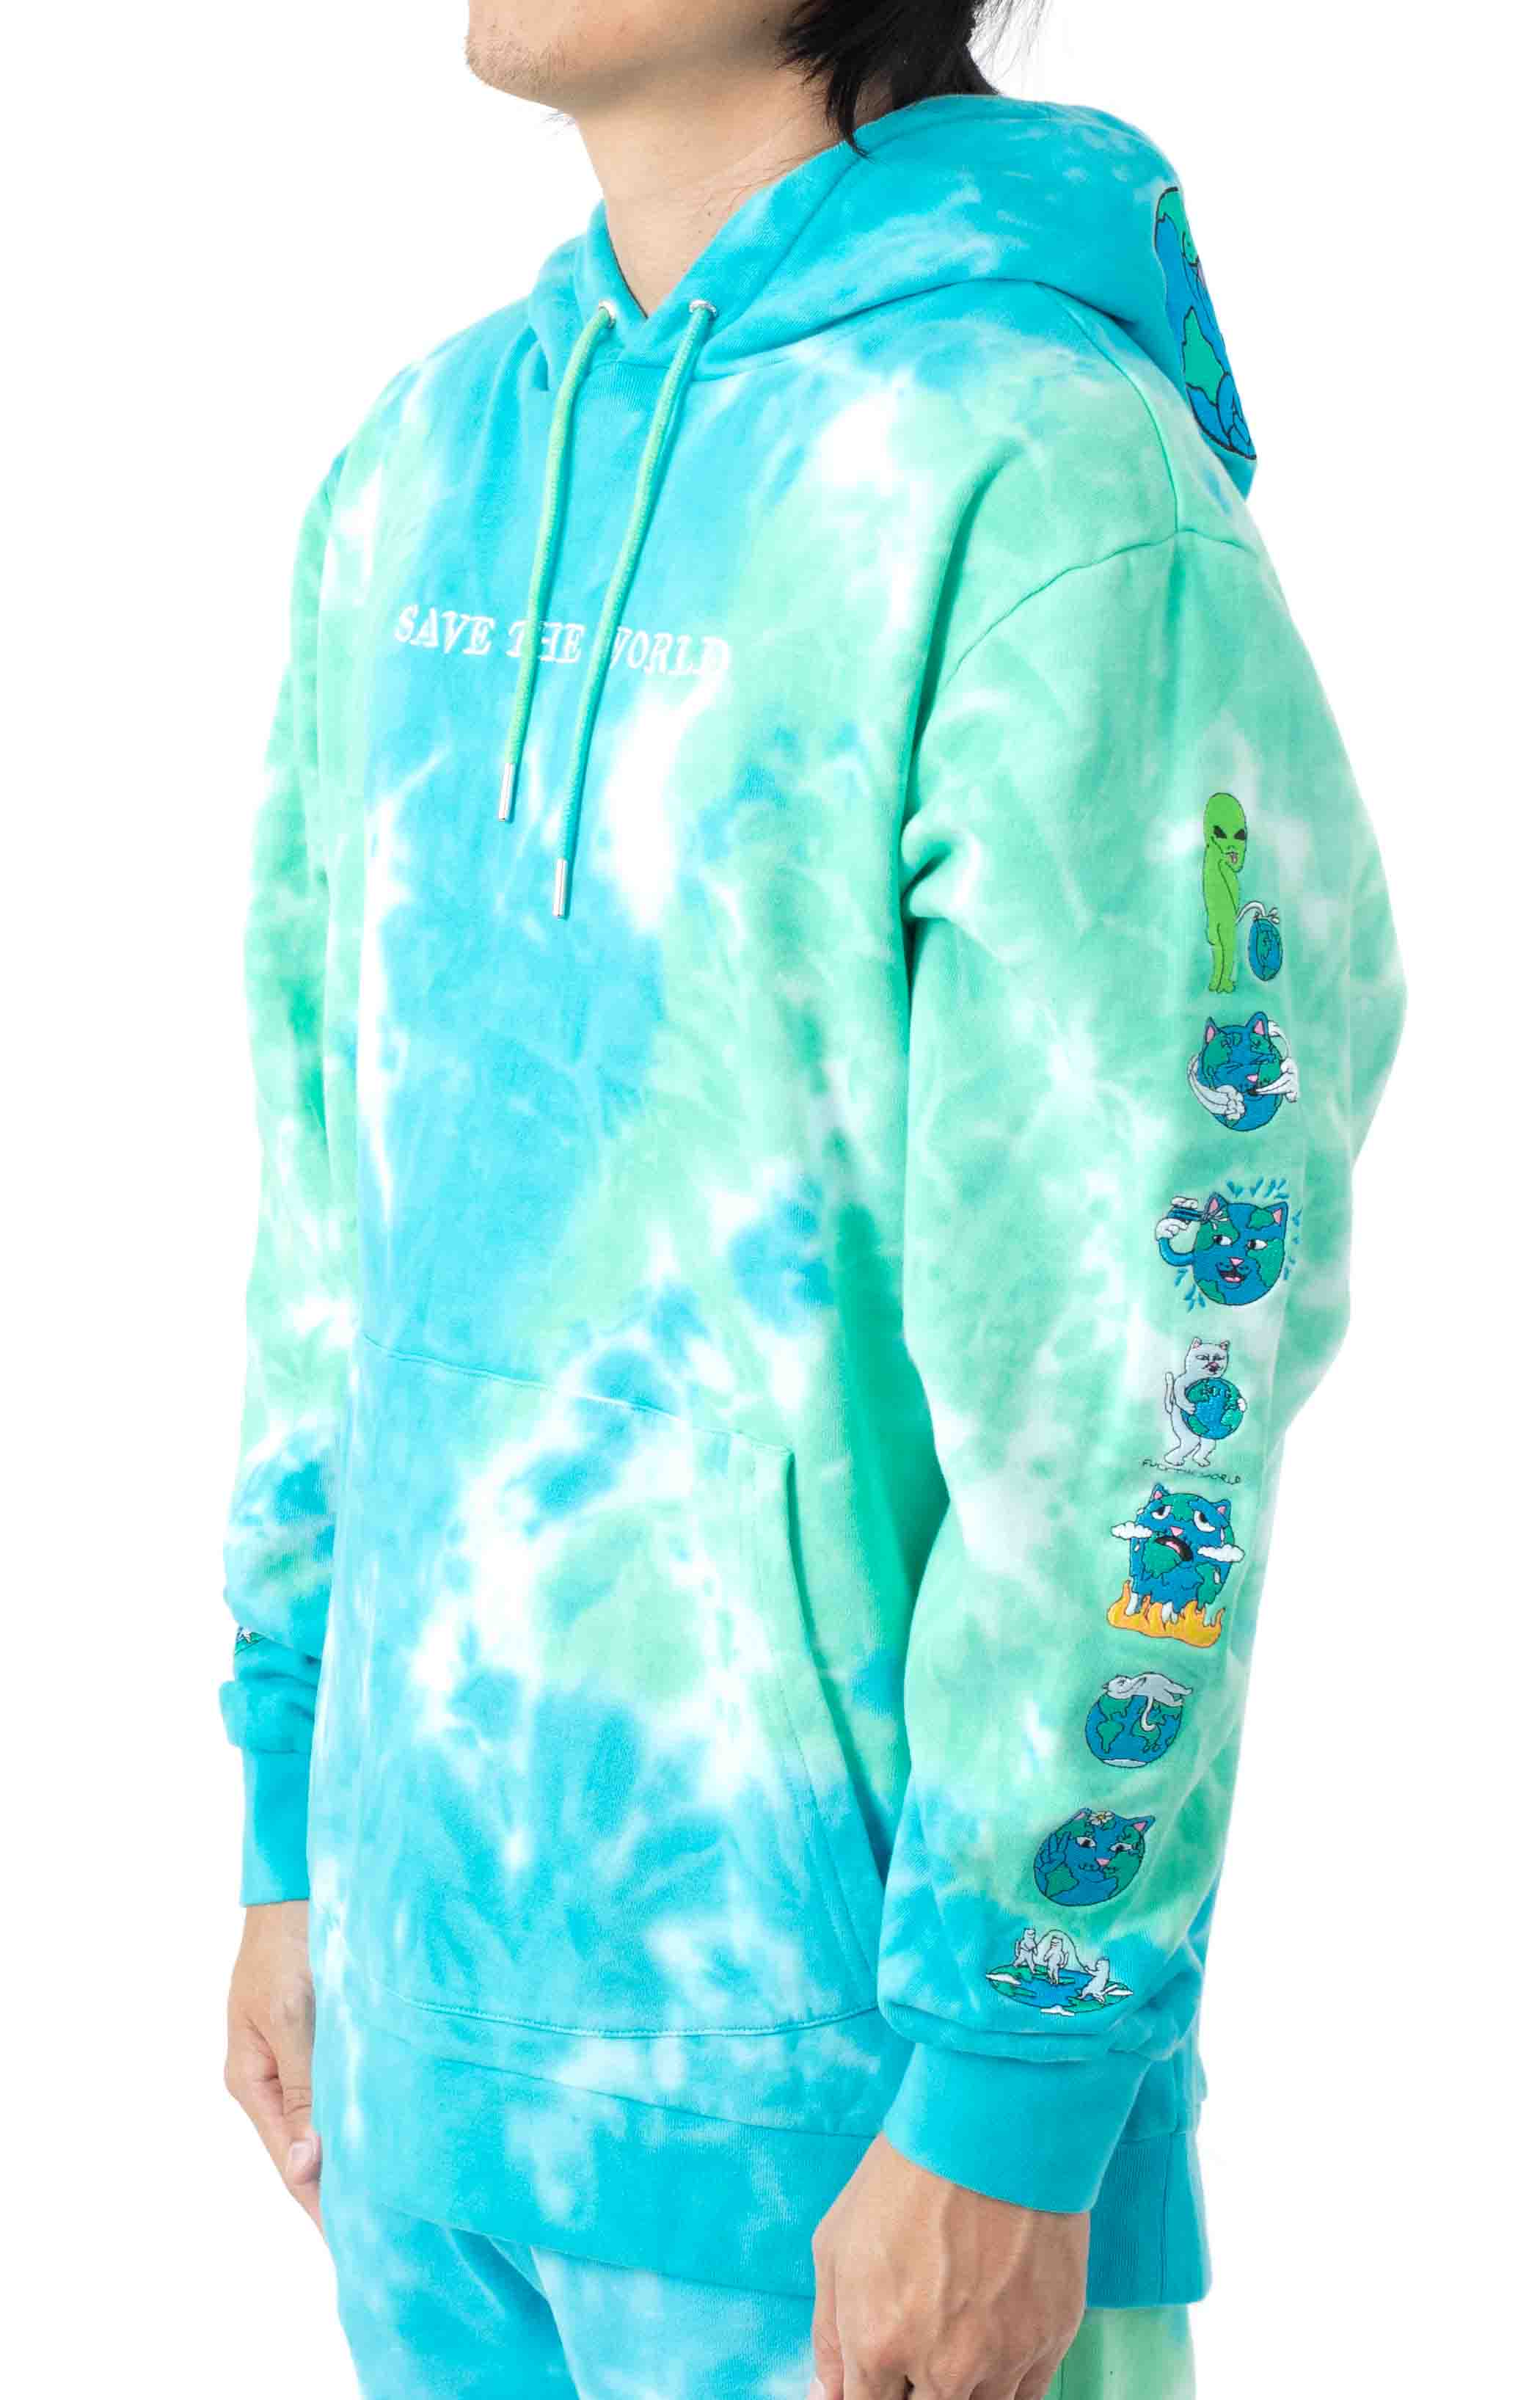 Save The World Embroidered Pullover Hoodie - Aqua/Green Tie-Dye 2